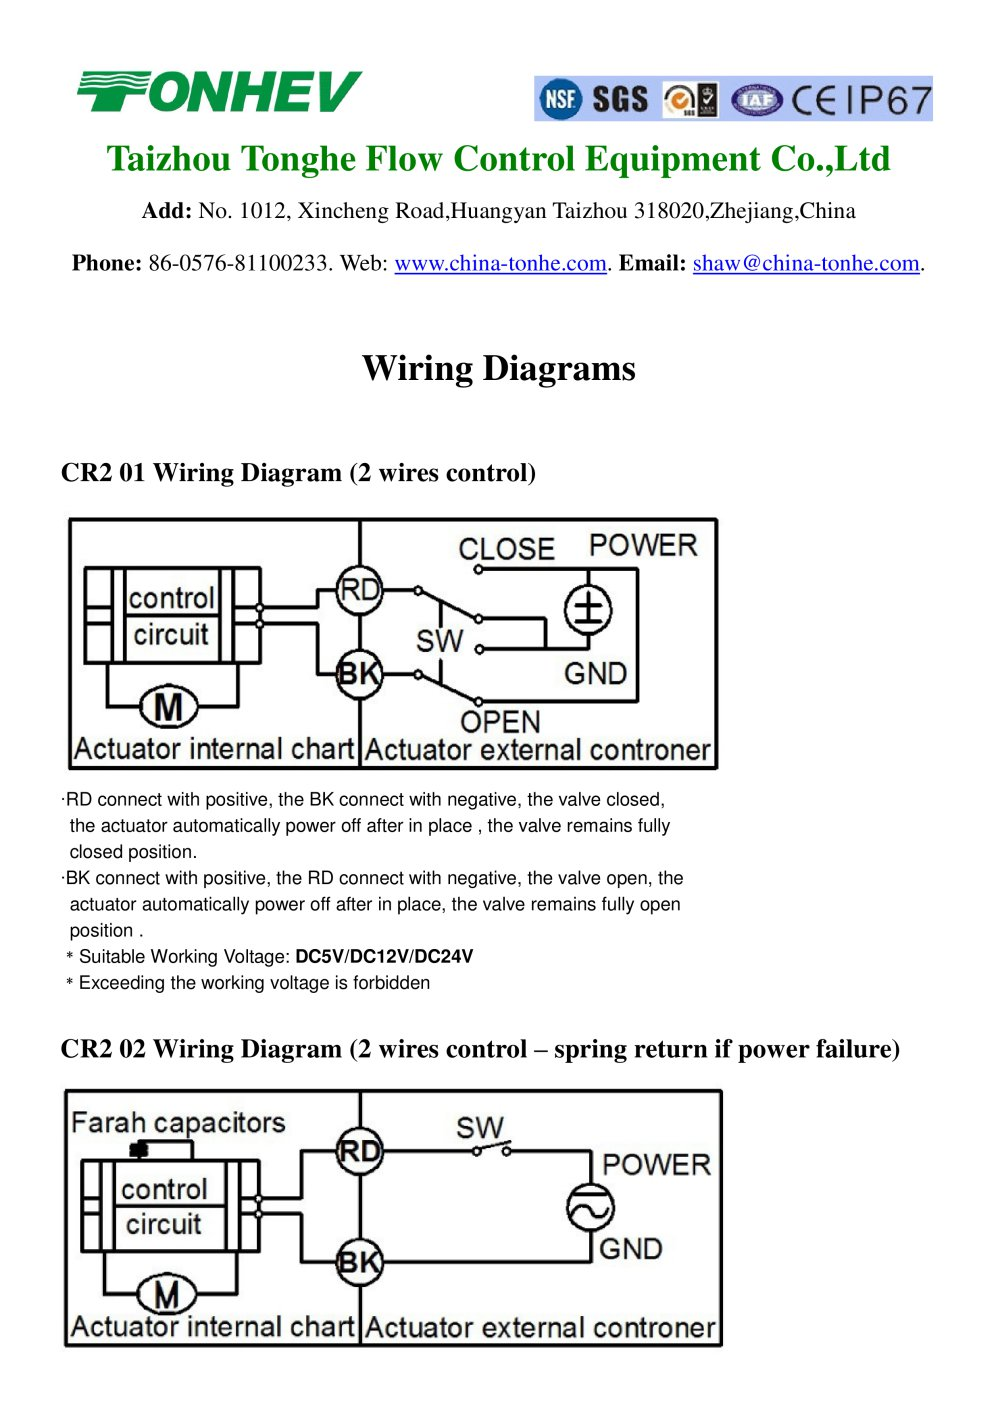 Tonhe Motorized Valve Wiring Diagrams Taizhou Flow Control 2 Way Circuit Diagram 1 4 Pages